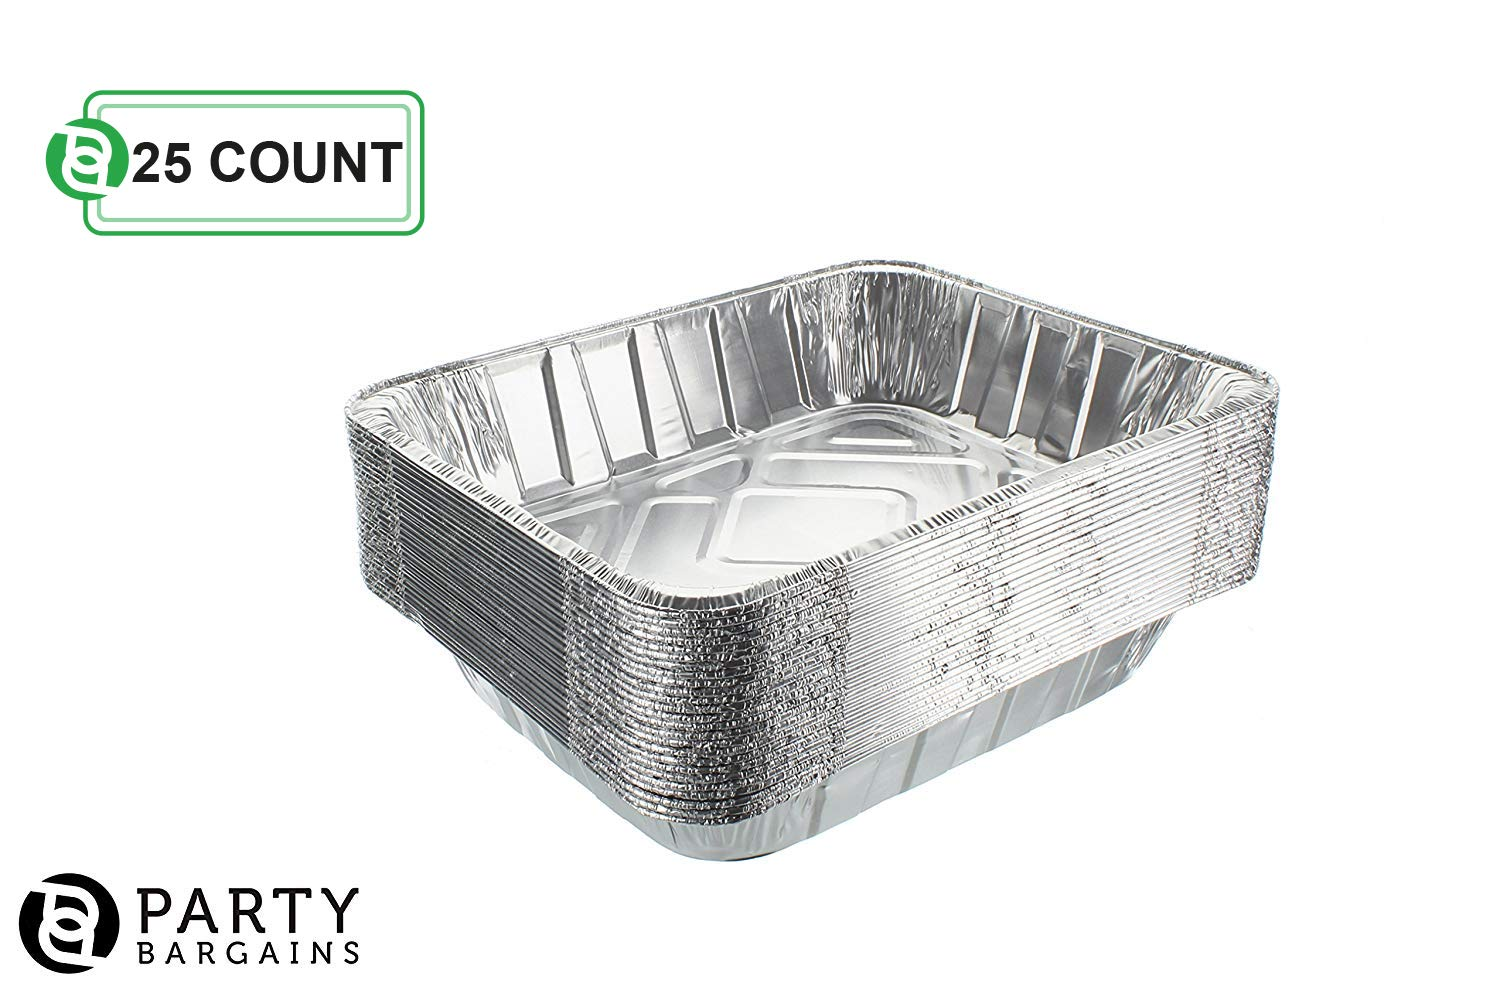 Aluminum Foil Pans   Disposable Pan Containers with Lids Set   Excellent for Broiling, Roasting, Grilling, Baking Cakes, Pies, Lasagna, More   9 x 13 Half Size Deep Steam Table Pans   25 Count by Party Bargains (Image #3)